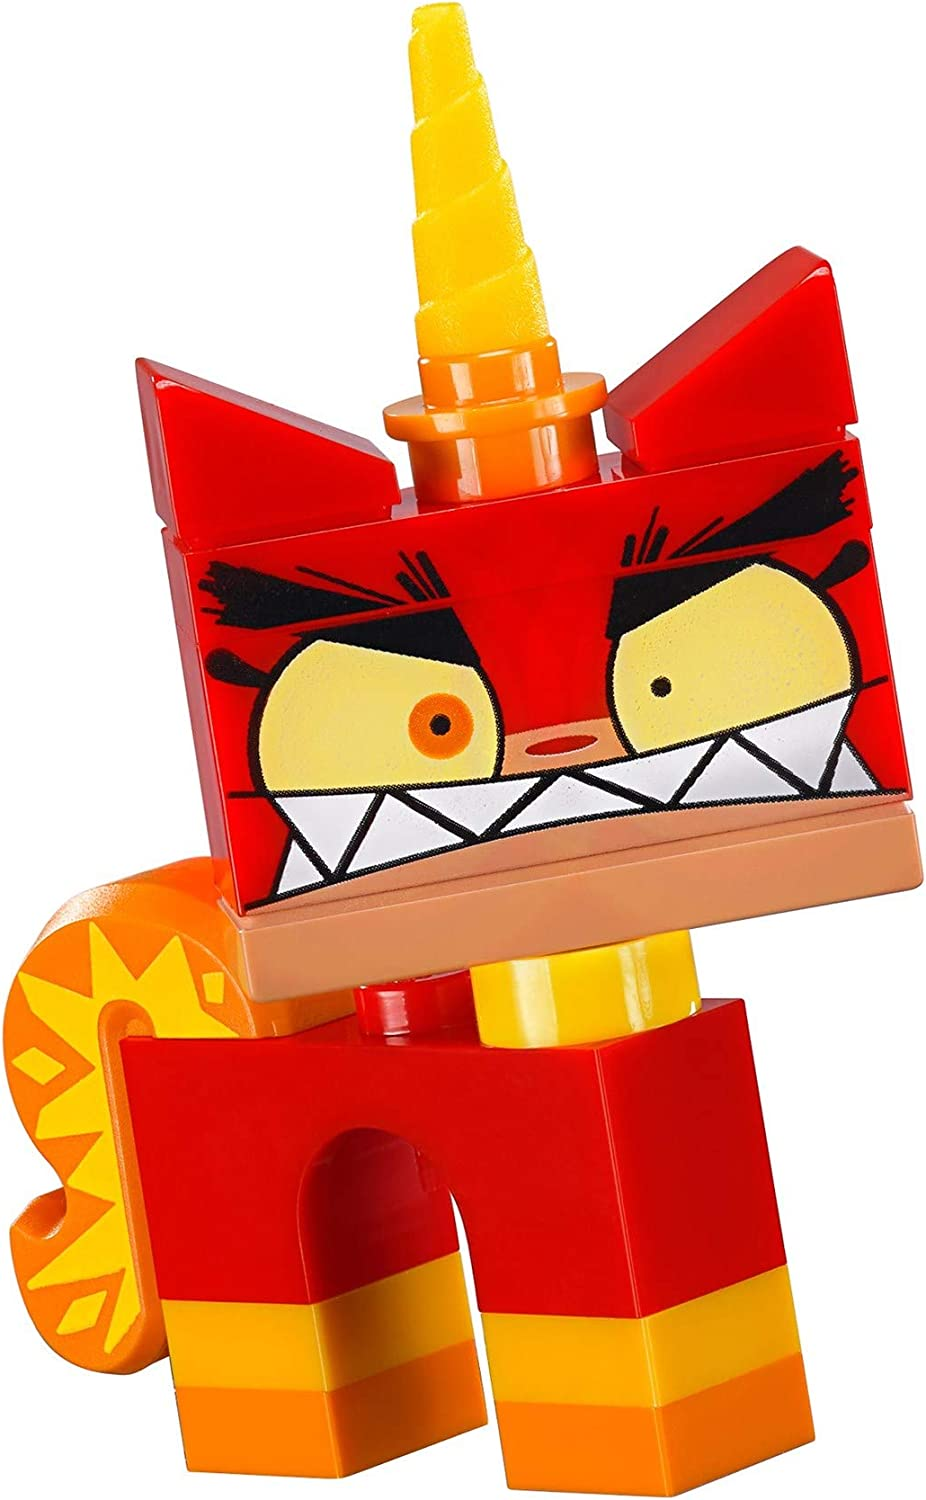 LEGO Minifigures Unikitty Series - Angry Unikitty - 41775